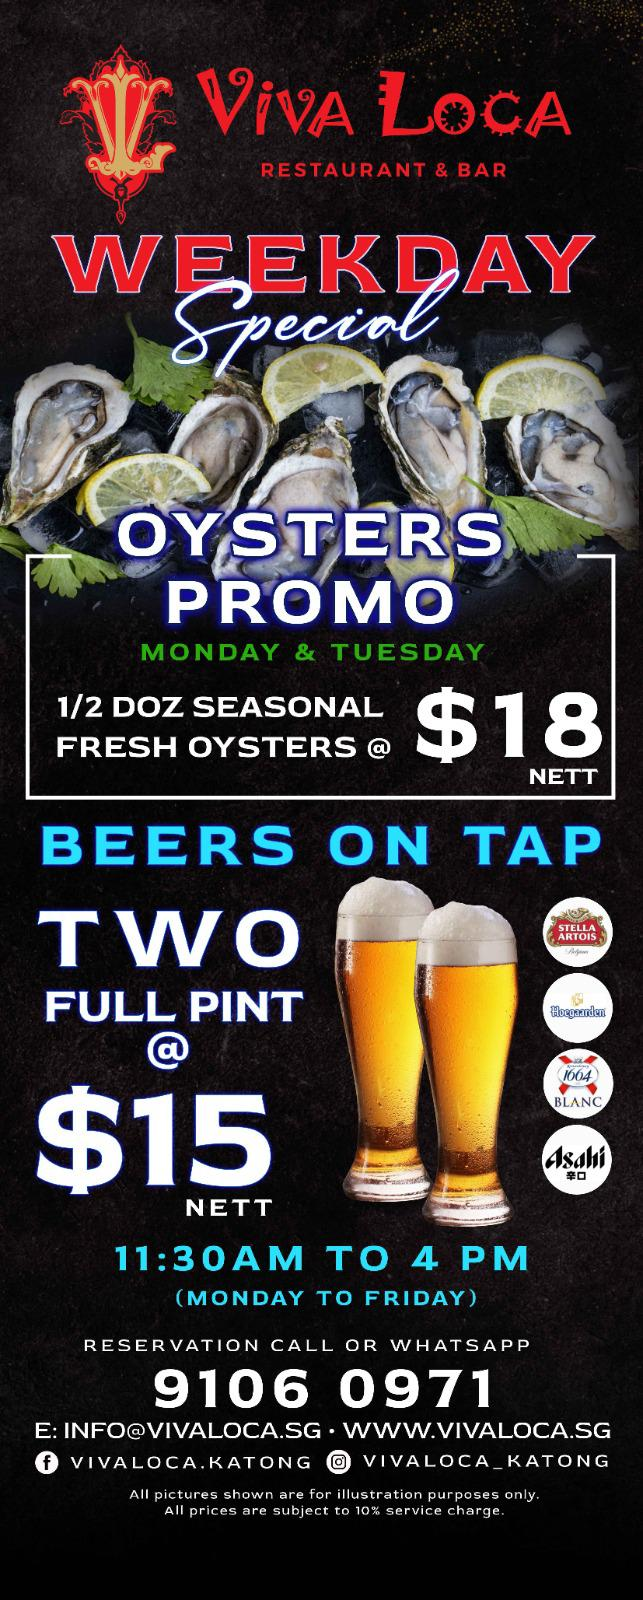 Oysters Promo